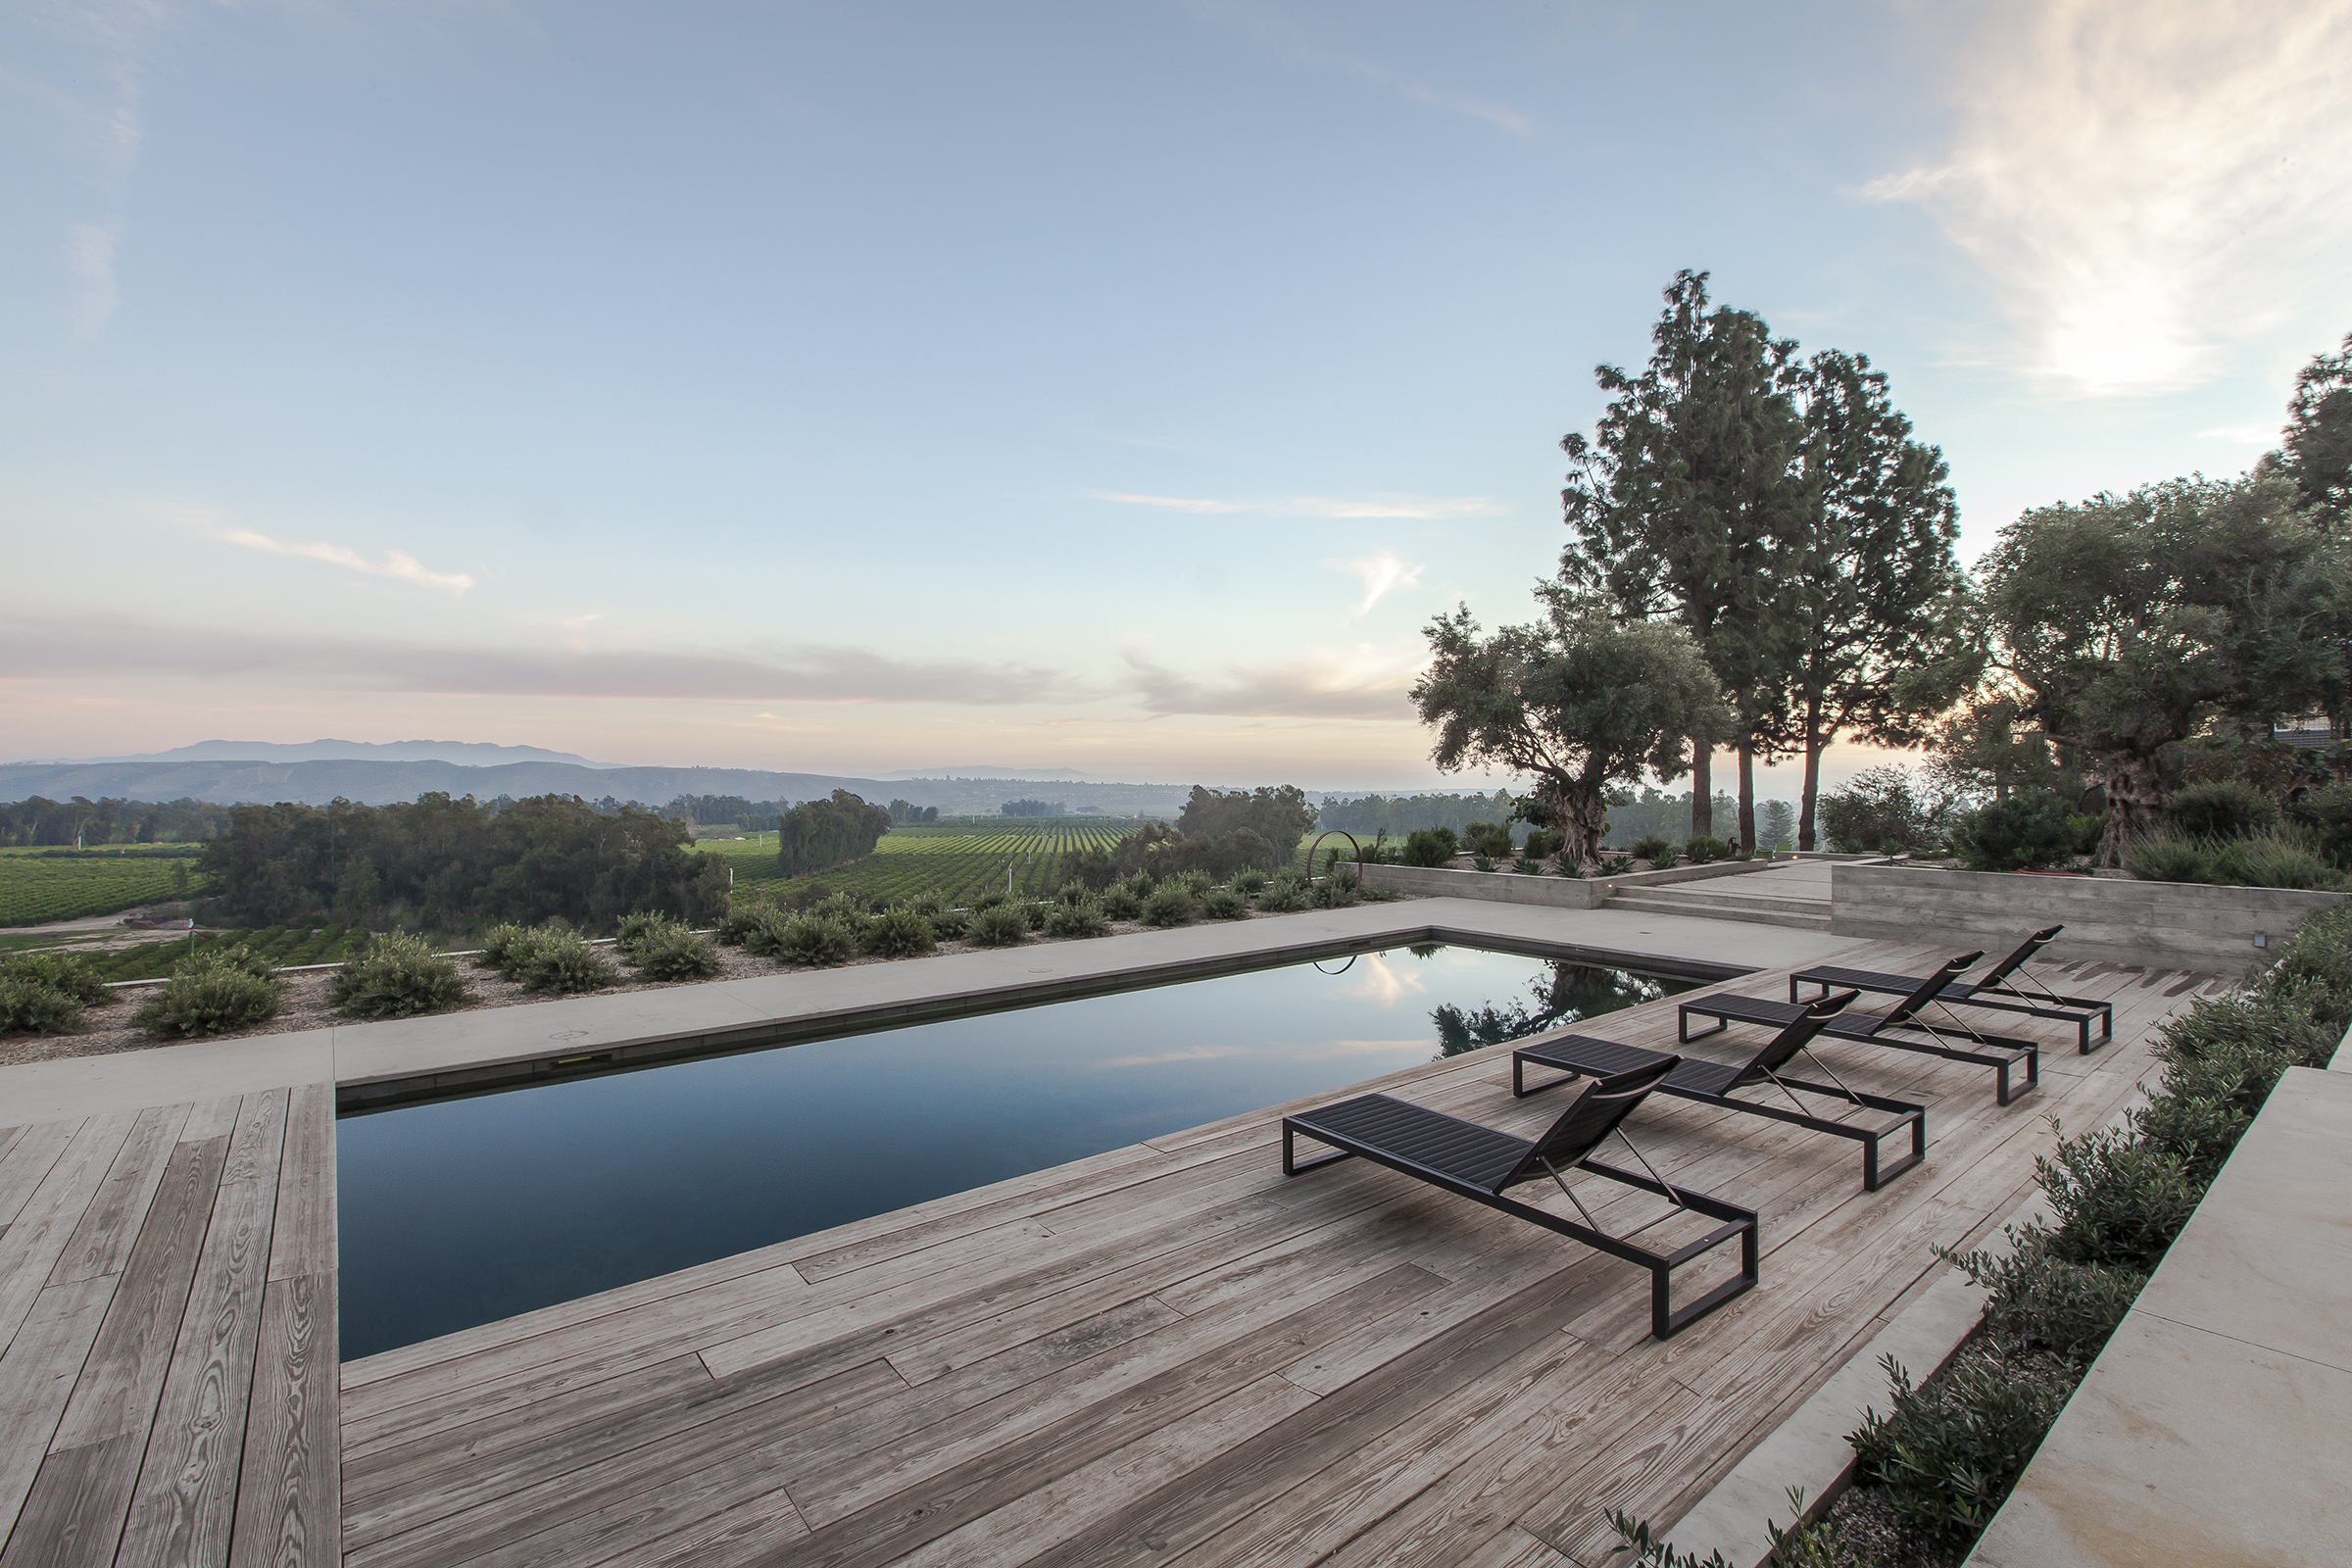 Table To Farm Cj Paone Aia Ventura Ca Architect